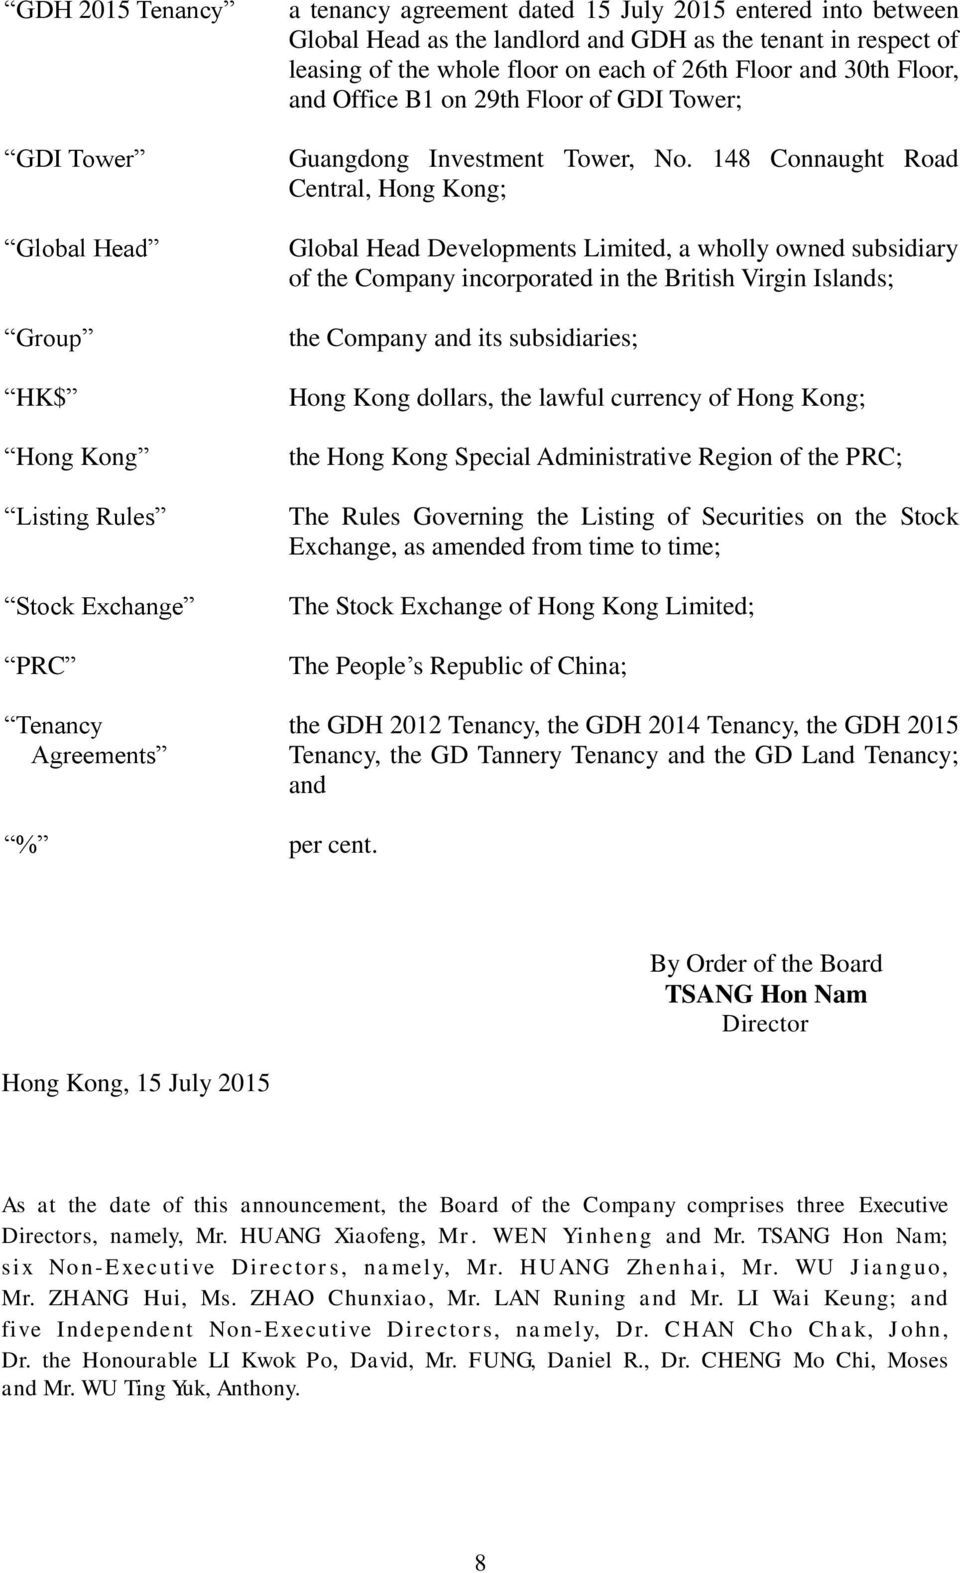 148 Connaught Road Central, Hong Kong; Global Head Developments Limited, a wholly owned subsidiary of the Company incorporated in the British Virgin Islands; the Company and its subsidiaries; Hong